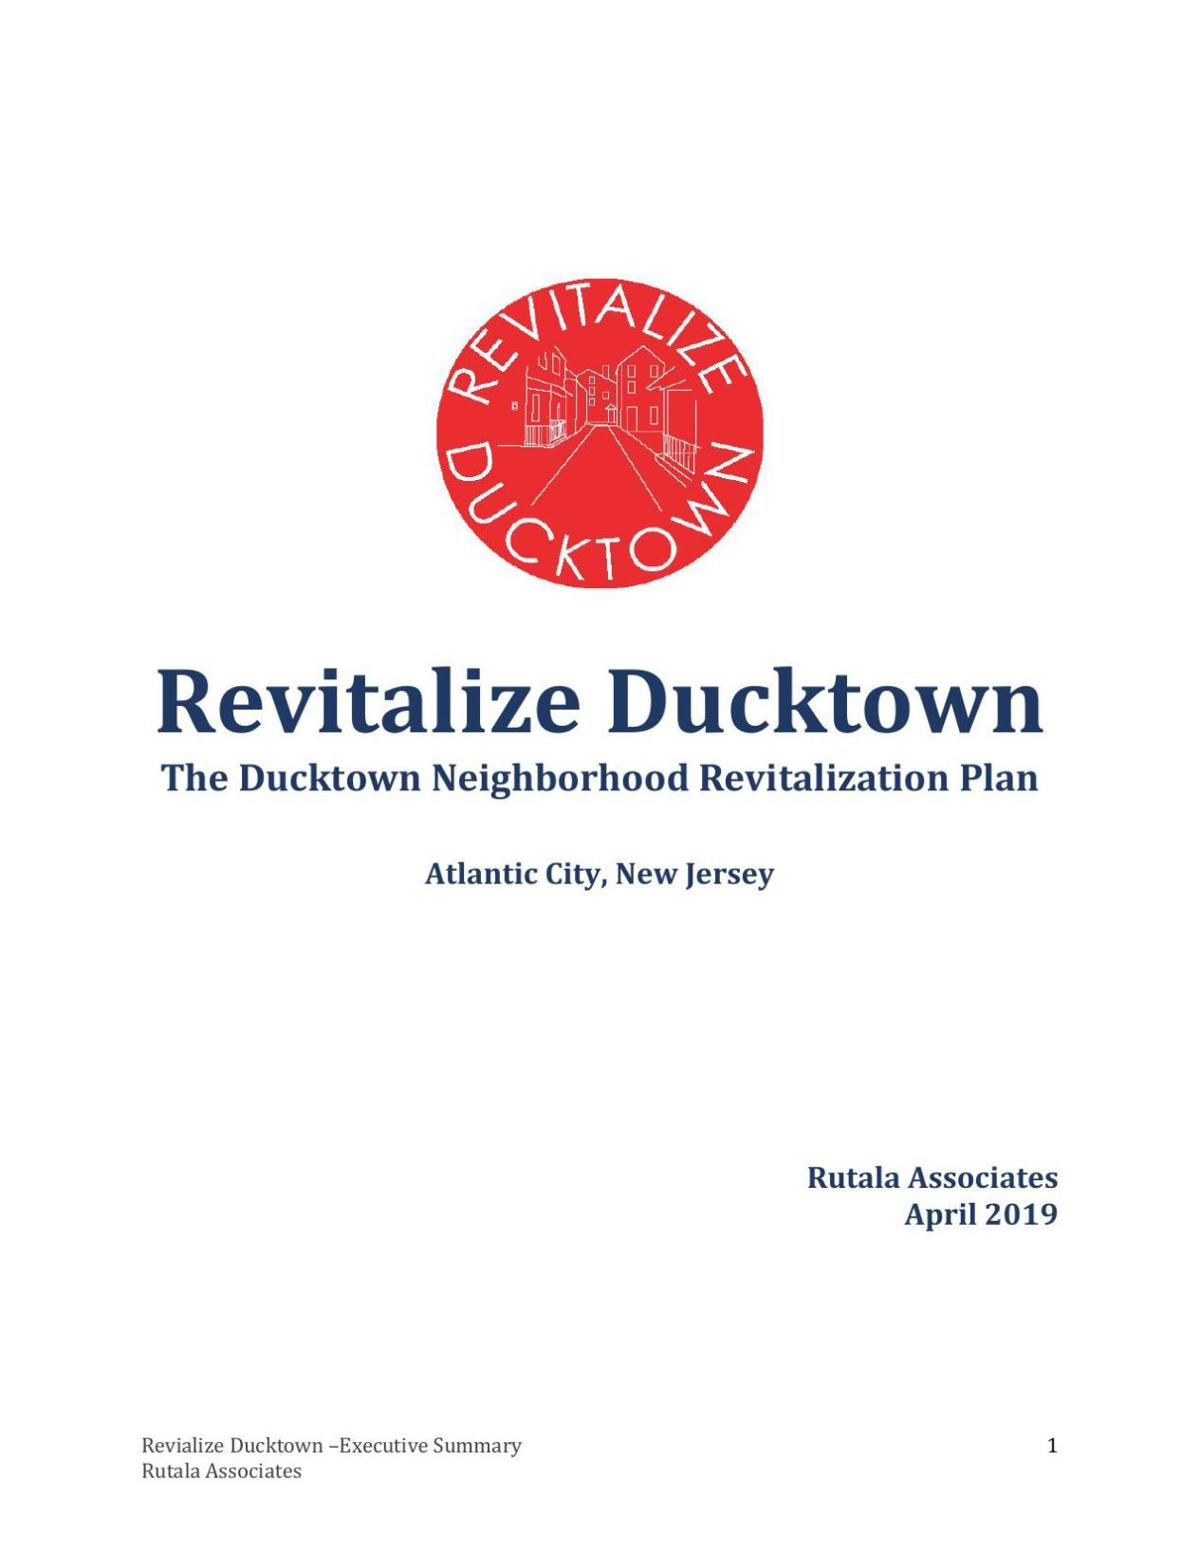 Ducktown Neighborhood Revitalization Plan